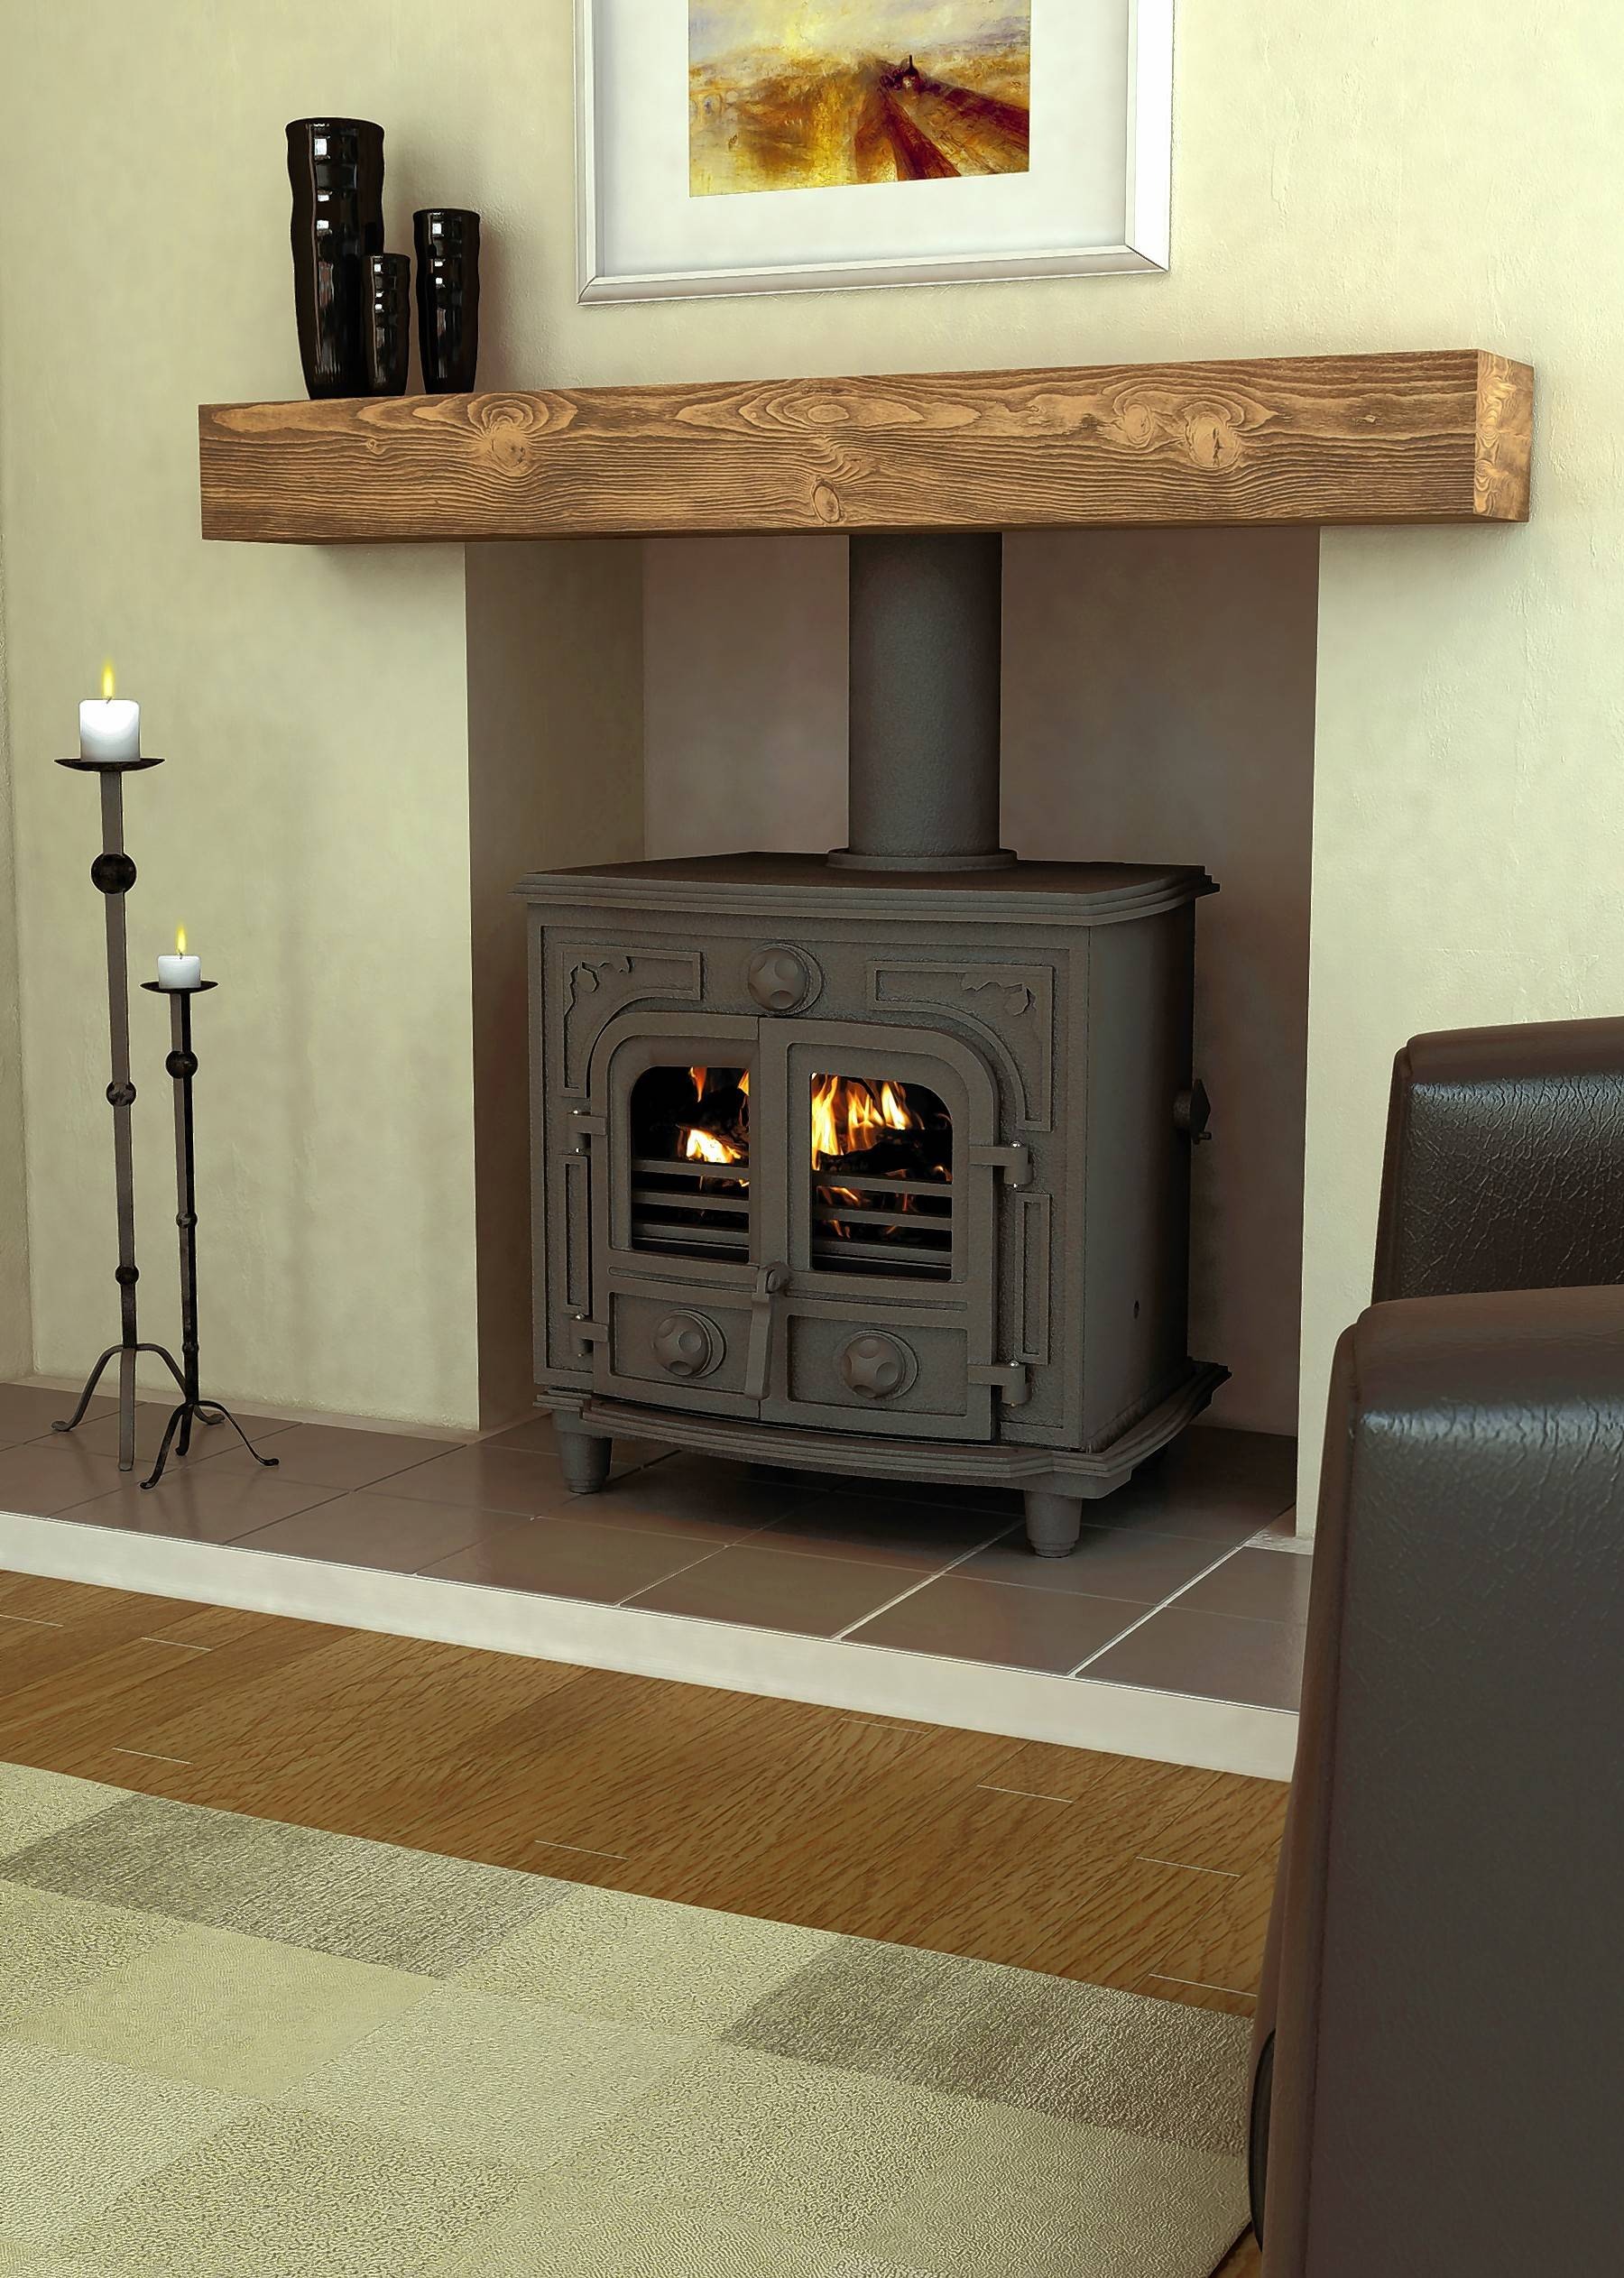 Wood stoves are popular in regions where firewood is plentiful and affordable.